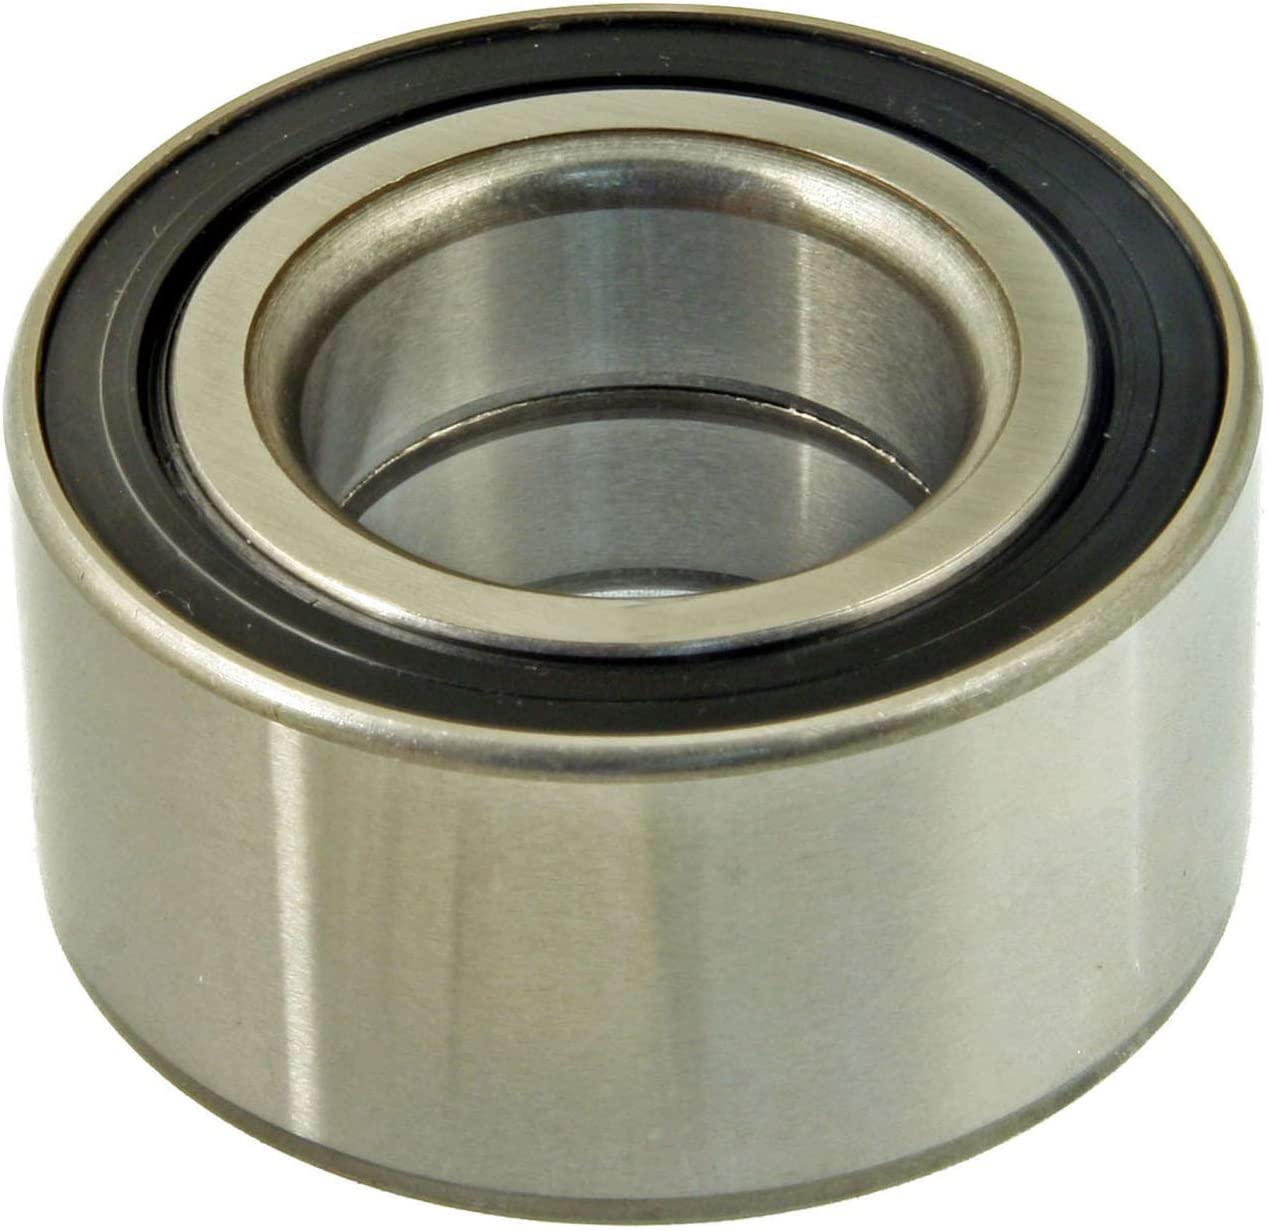 One Bearing Included with Two Years Warranty Note: AWD 2005 fits BMW 325xi Rear Wheel Bearing